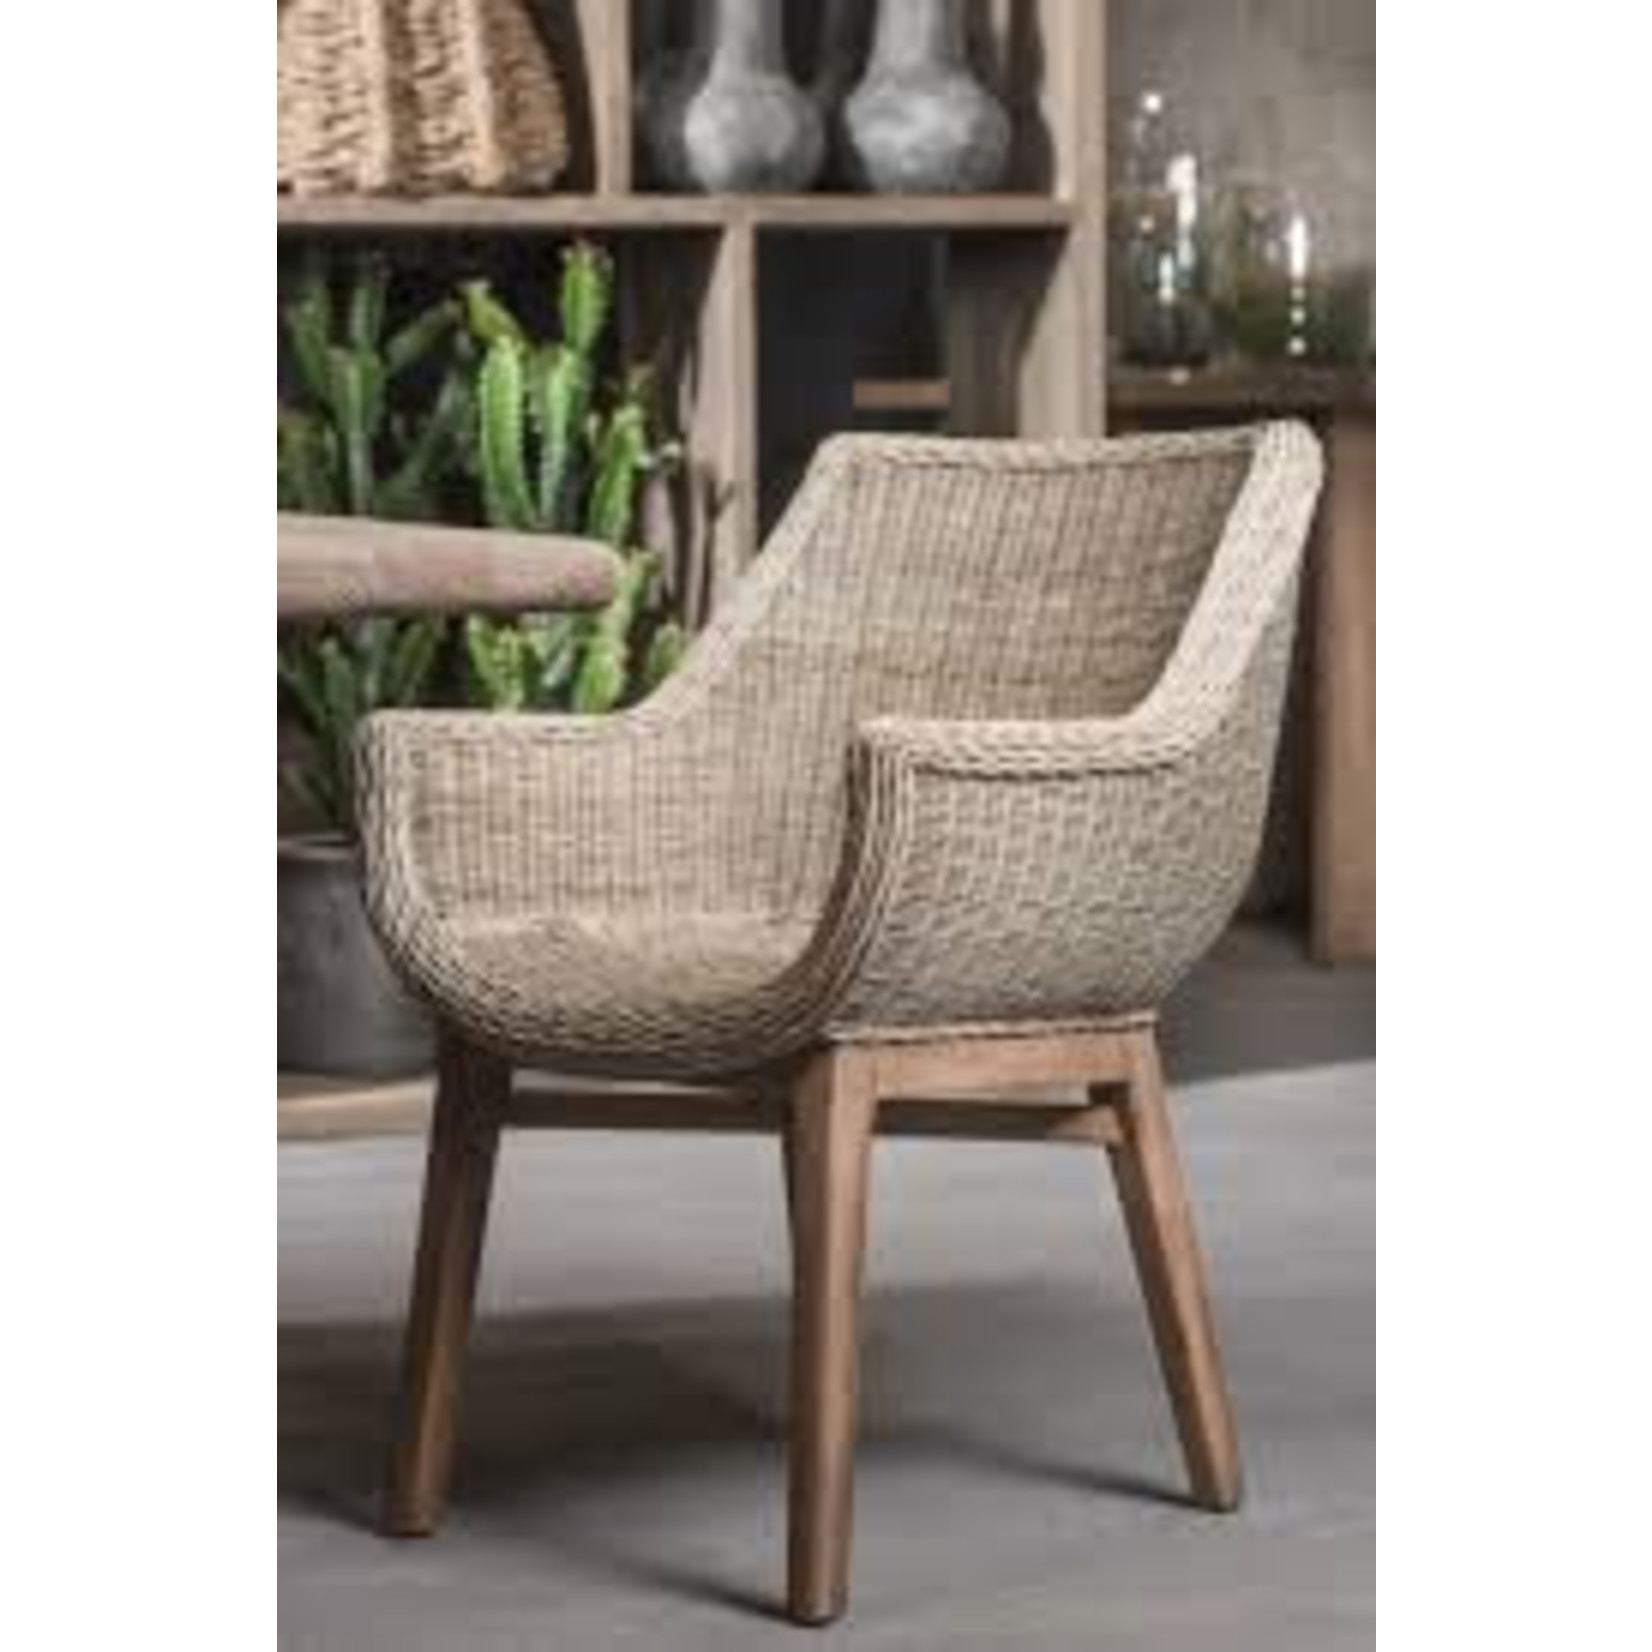 Gommaire Armchair Jacky   Teak Natural Grey / PE Wicker Natural